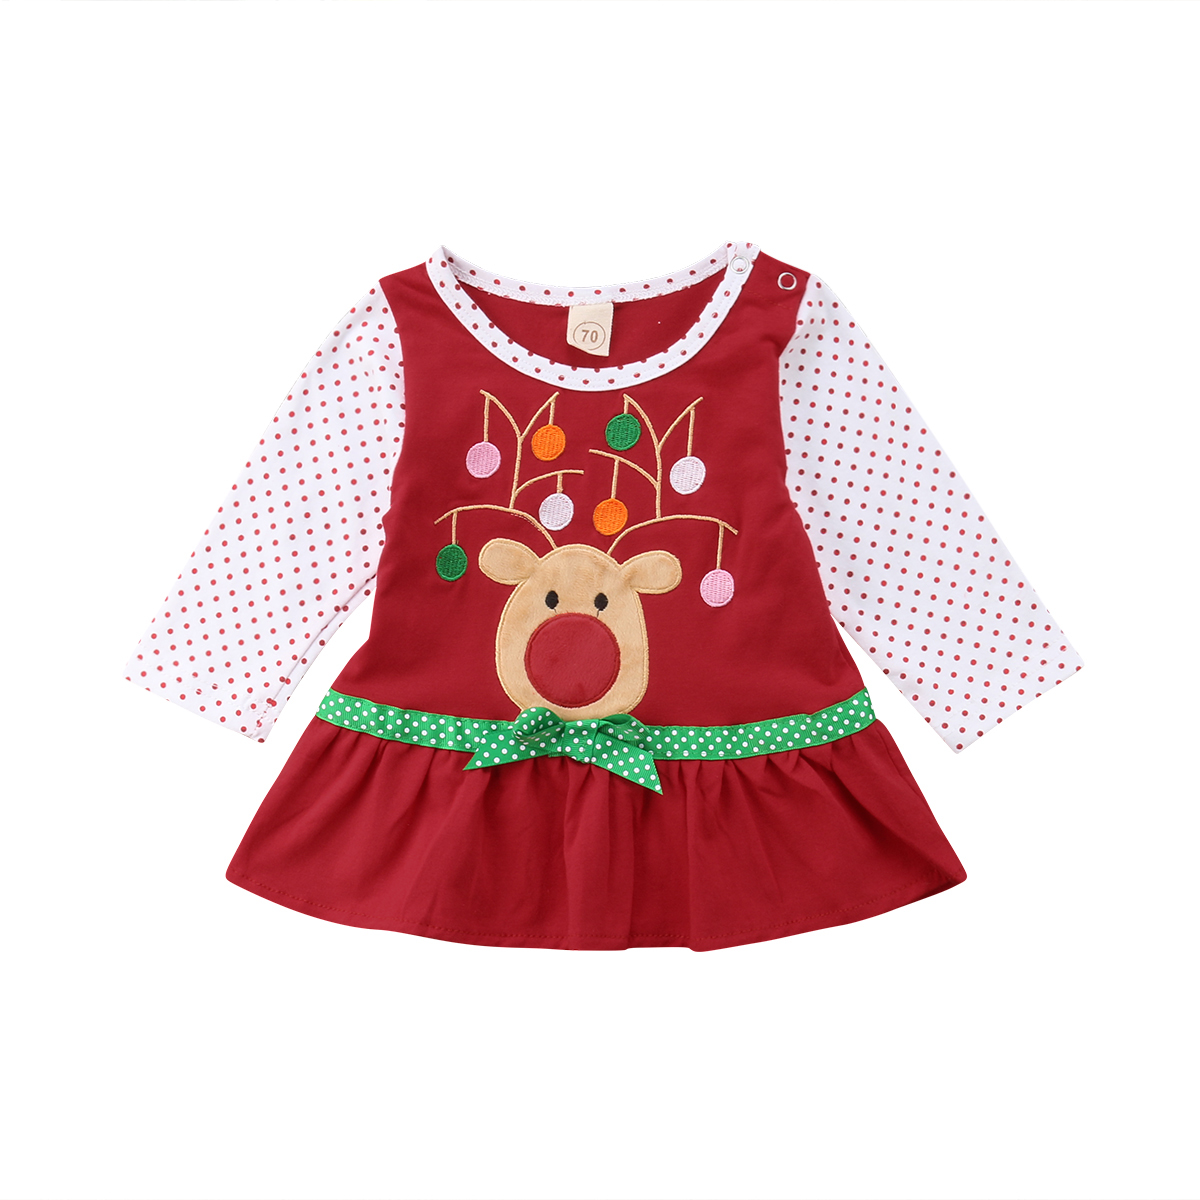 Cute, Princess, Party, Deer, Christmas, Baby